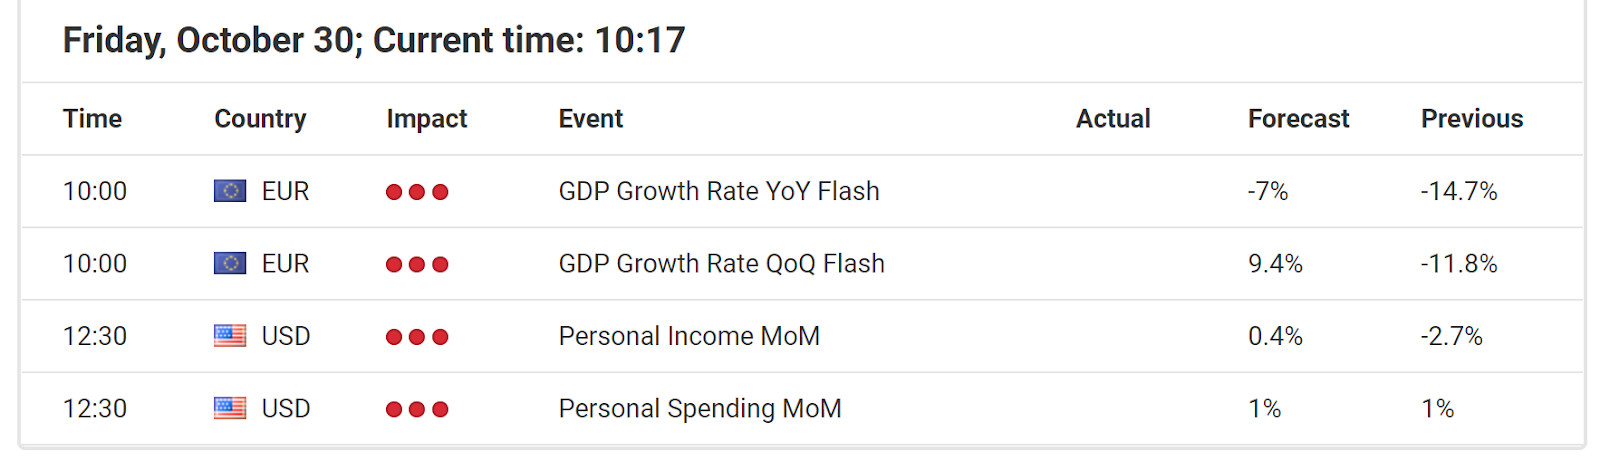 Economic Events October 30, 2020